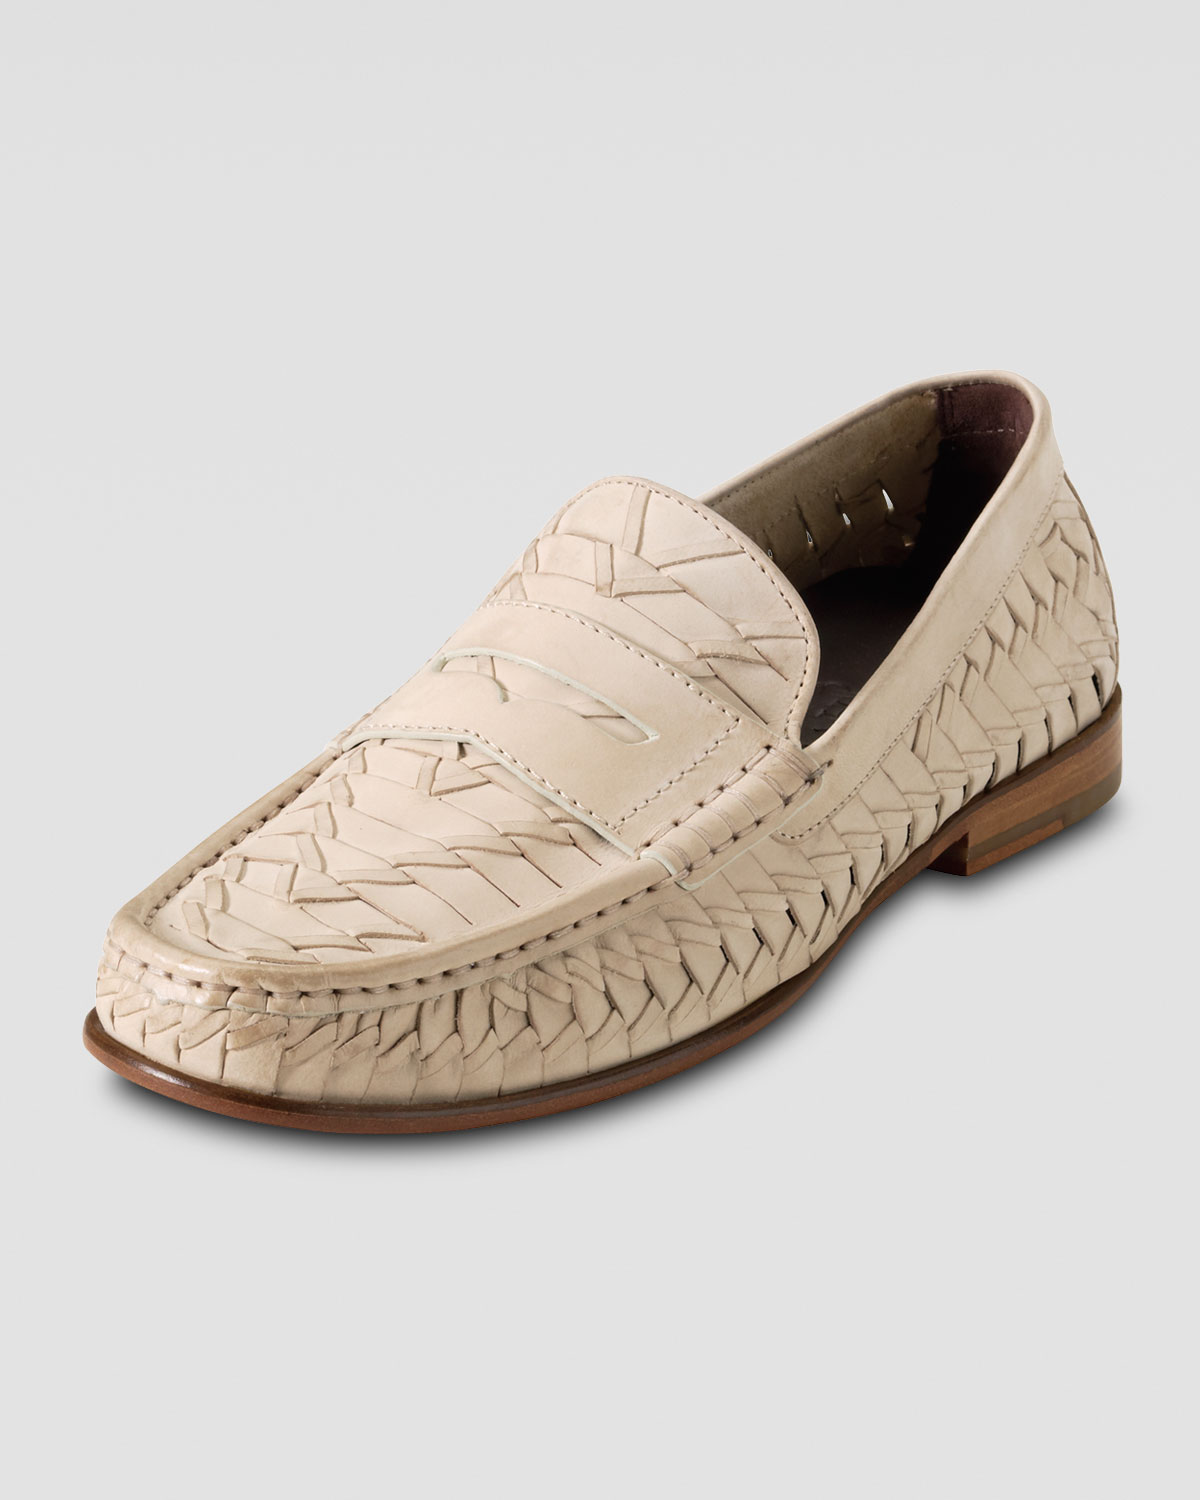 9c918e37865 Lyst - Cole Haan Air Tremont Woven Penny Loafer in Natural for Men